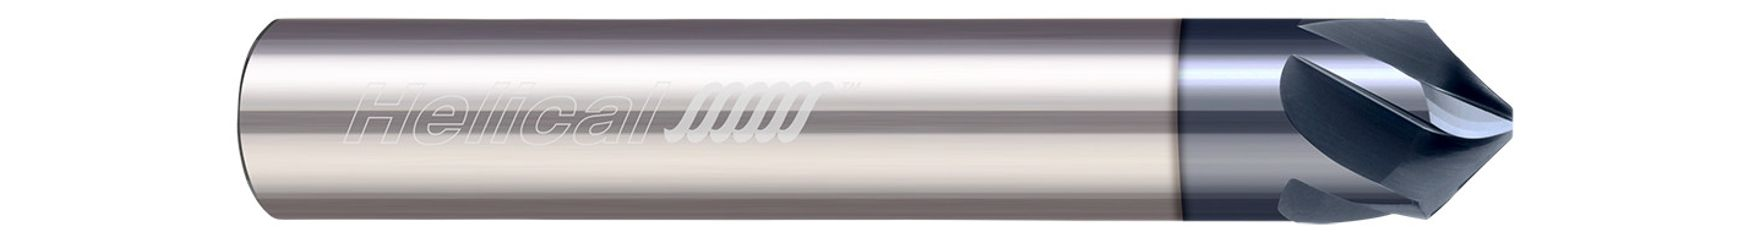 Specialty Profiles - Chamfer Mills - Helical Flute - 3 & 5 Flute - High Performance - Tipped Off